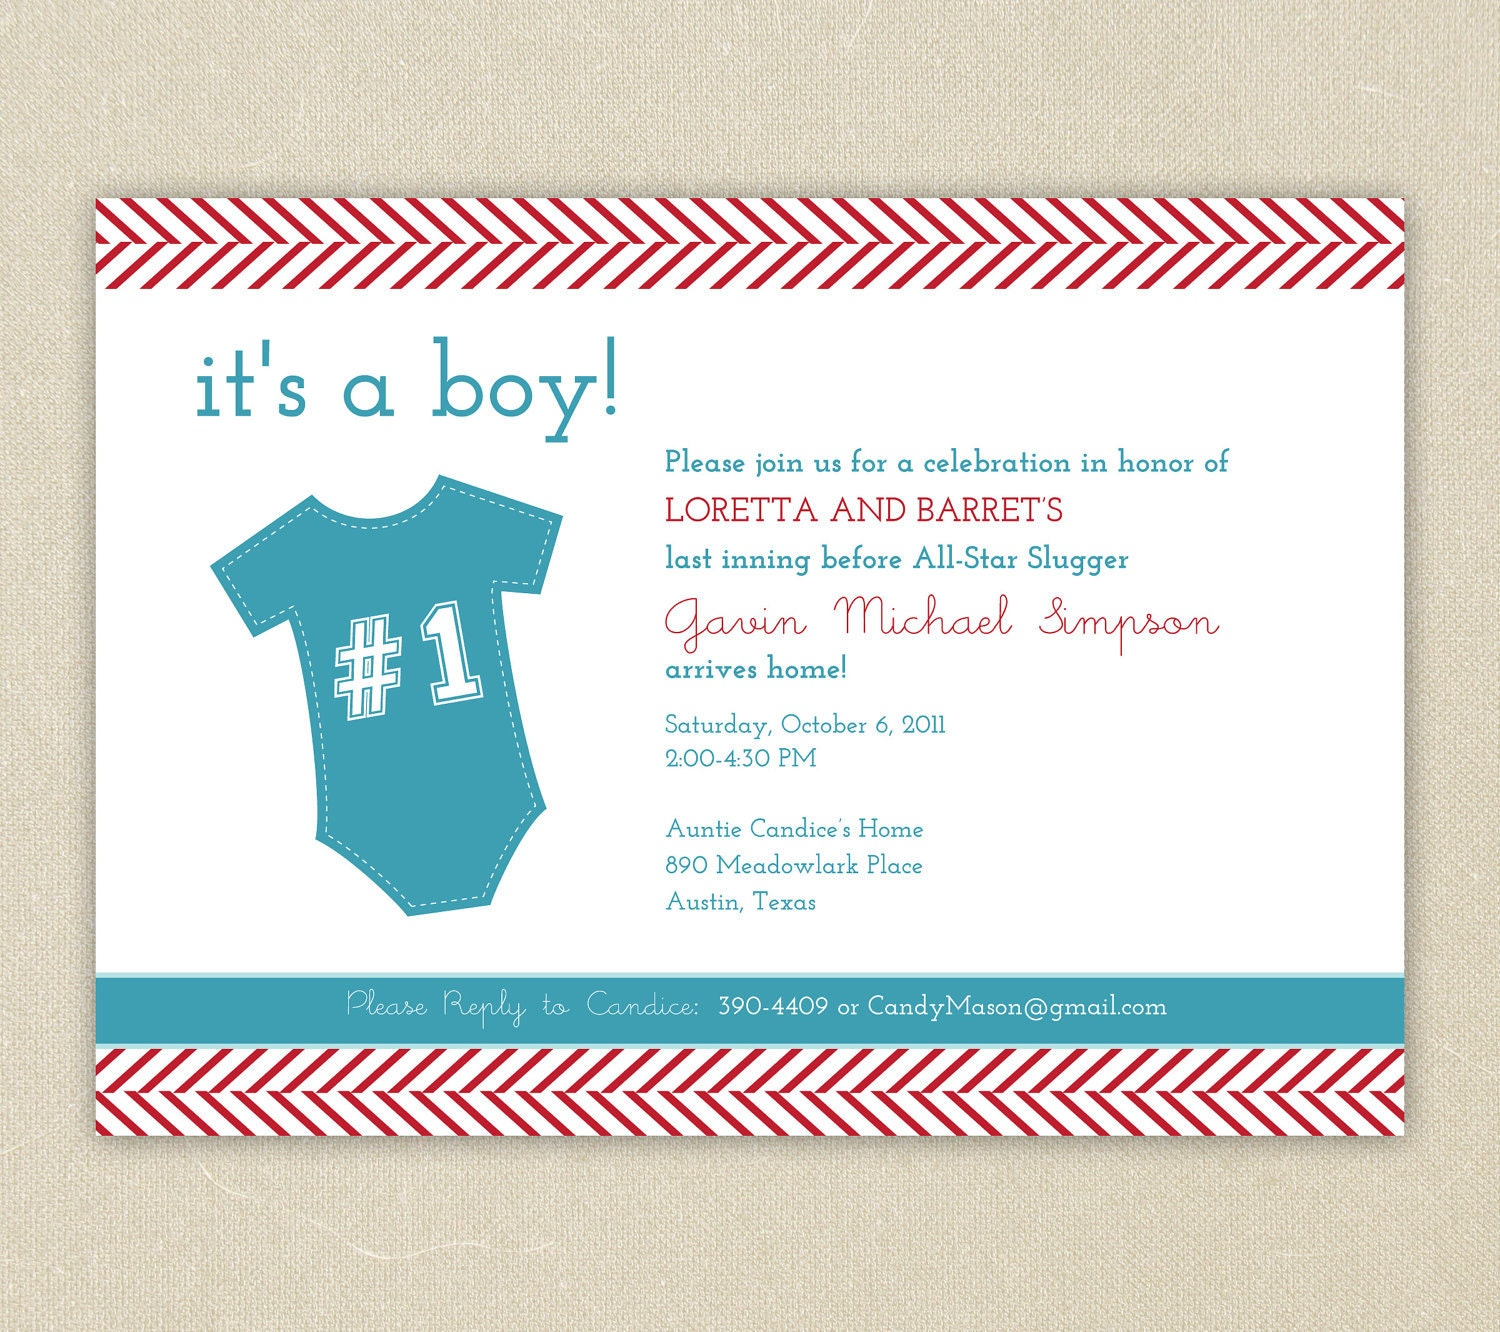 little slugger baseball themed baby shower invitation